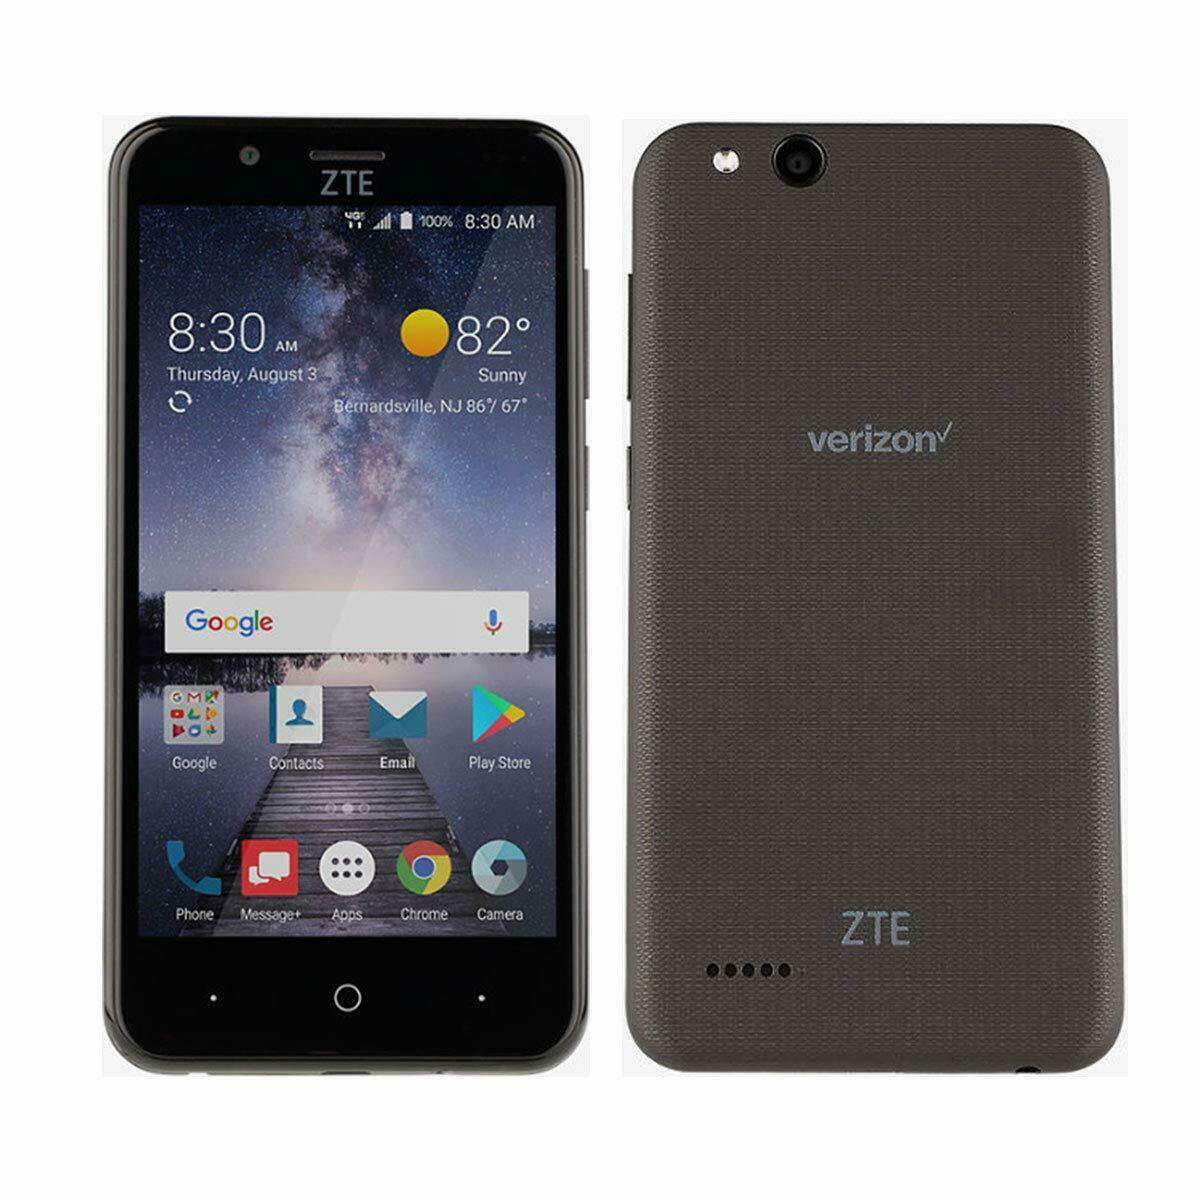 Android Phone - ZTE Z839 Blade Vantage Prepaid Smart Phone LTE Verizon Cell Phone Black